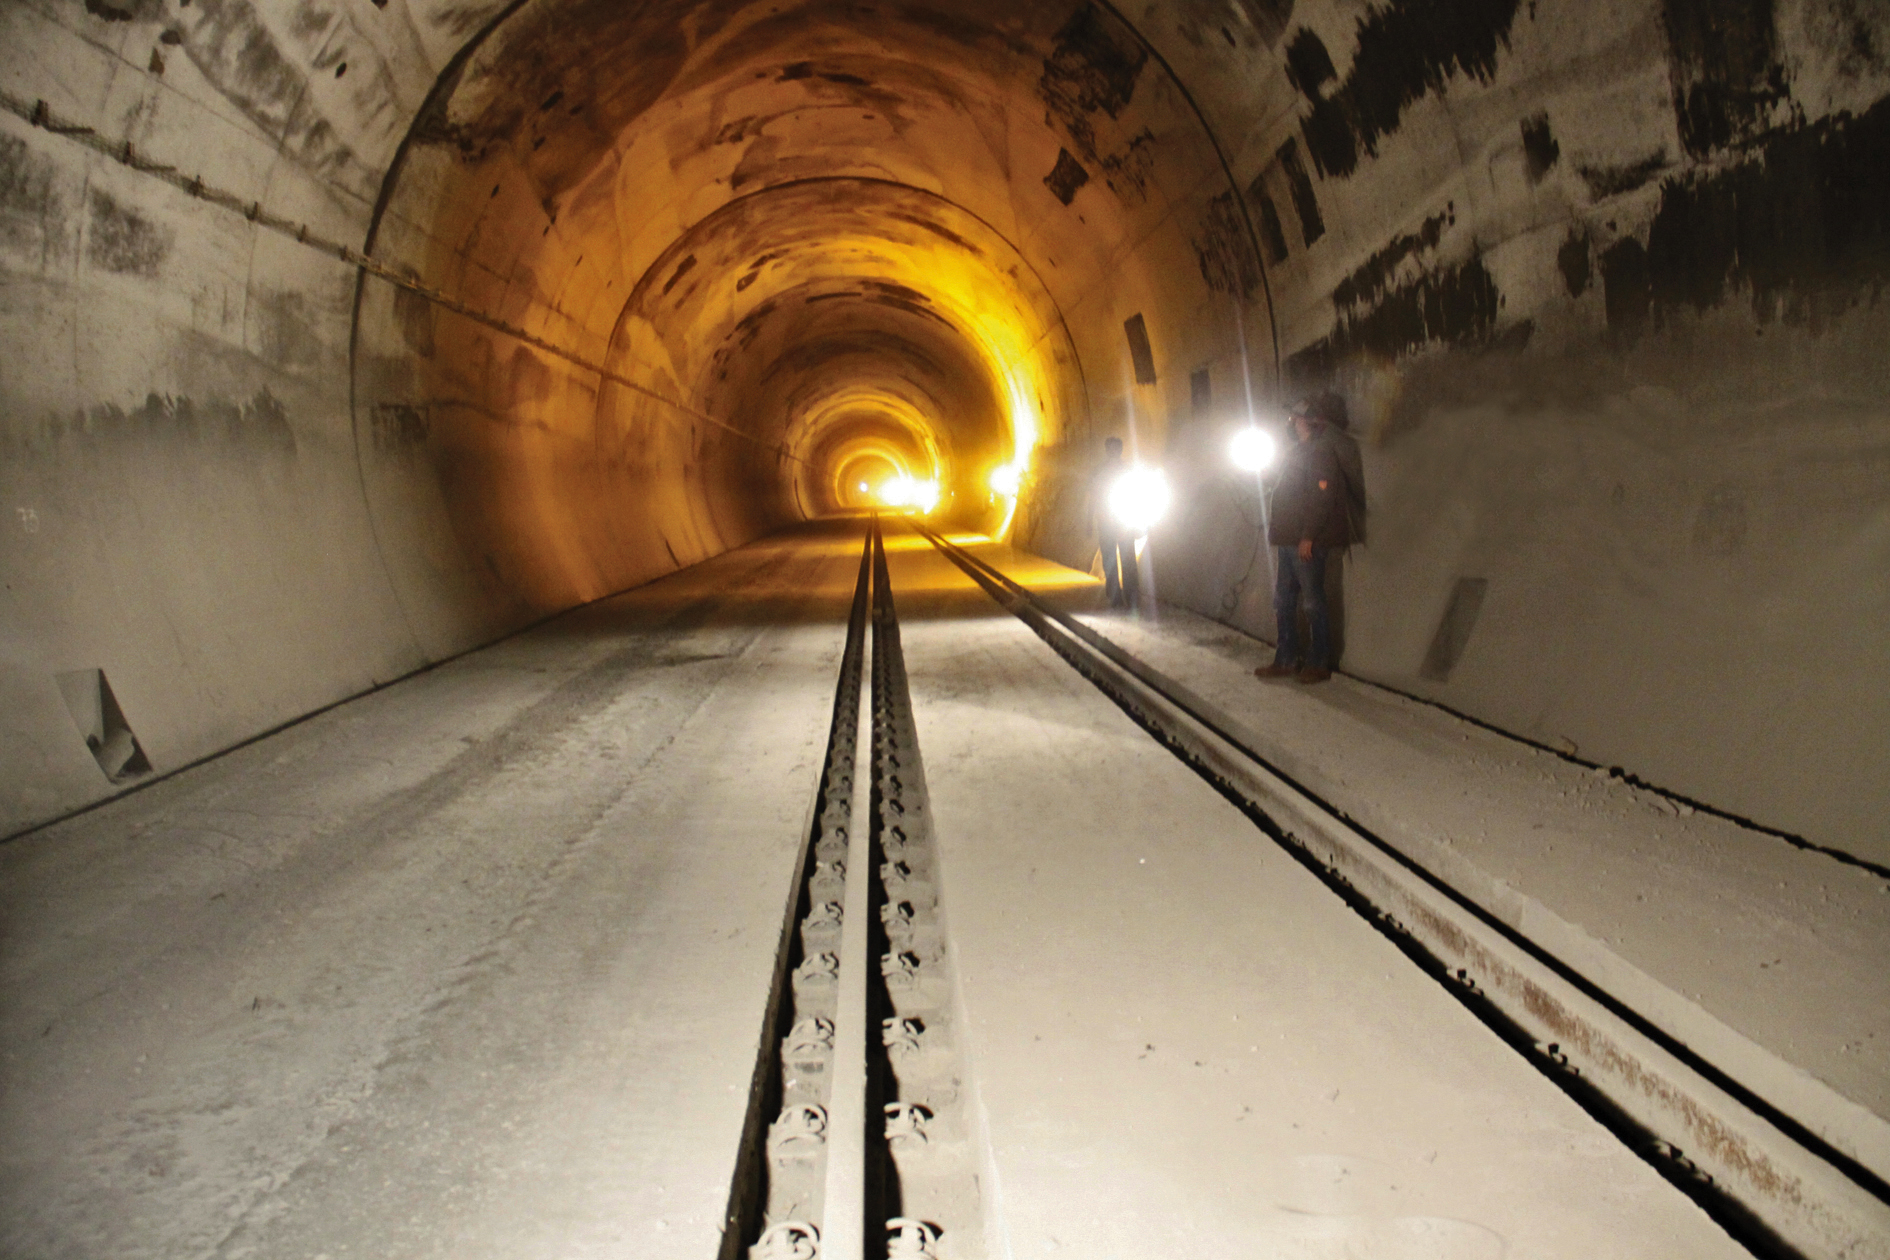 hindu singles in tunnel Engingeering marvel: india's first underwater metro tunnel to connect howrah and kolkata the metro operating in the tunnel will be the first metro train.